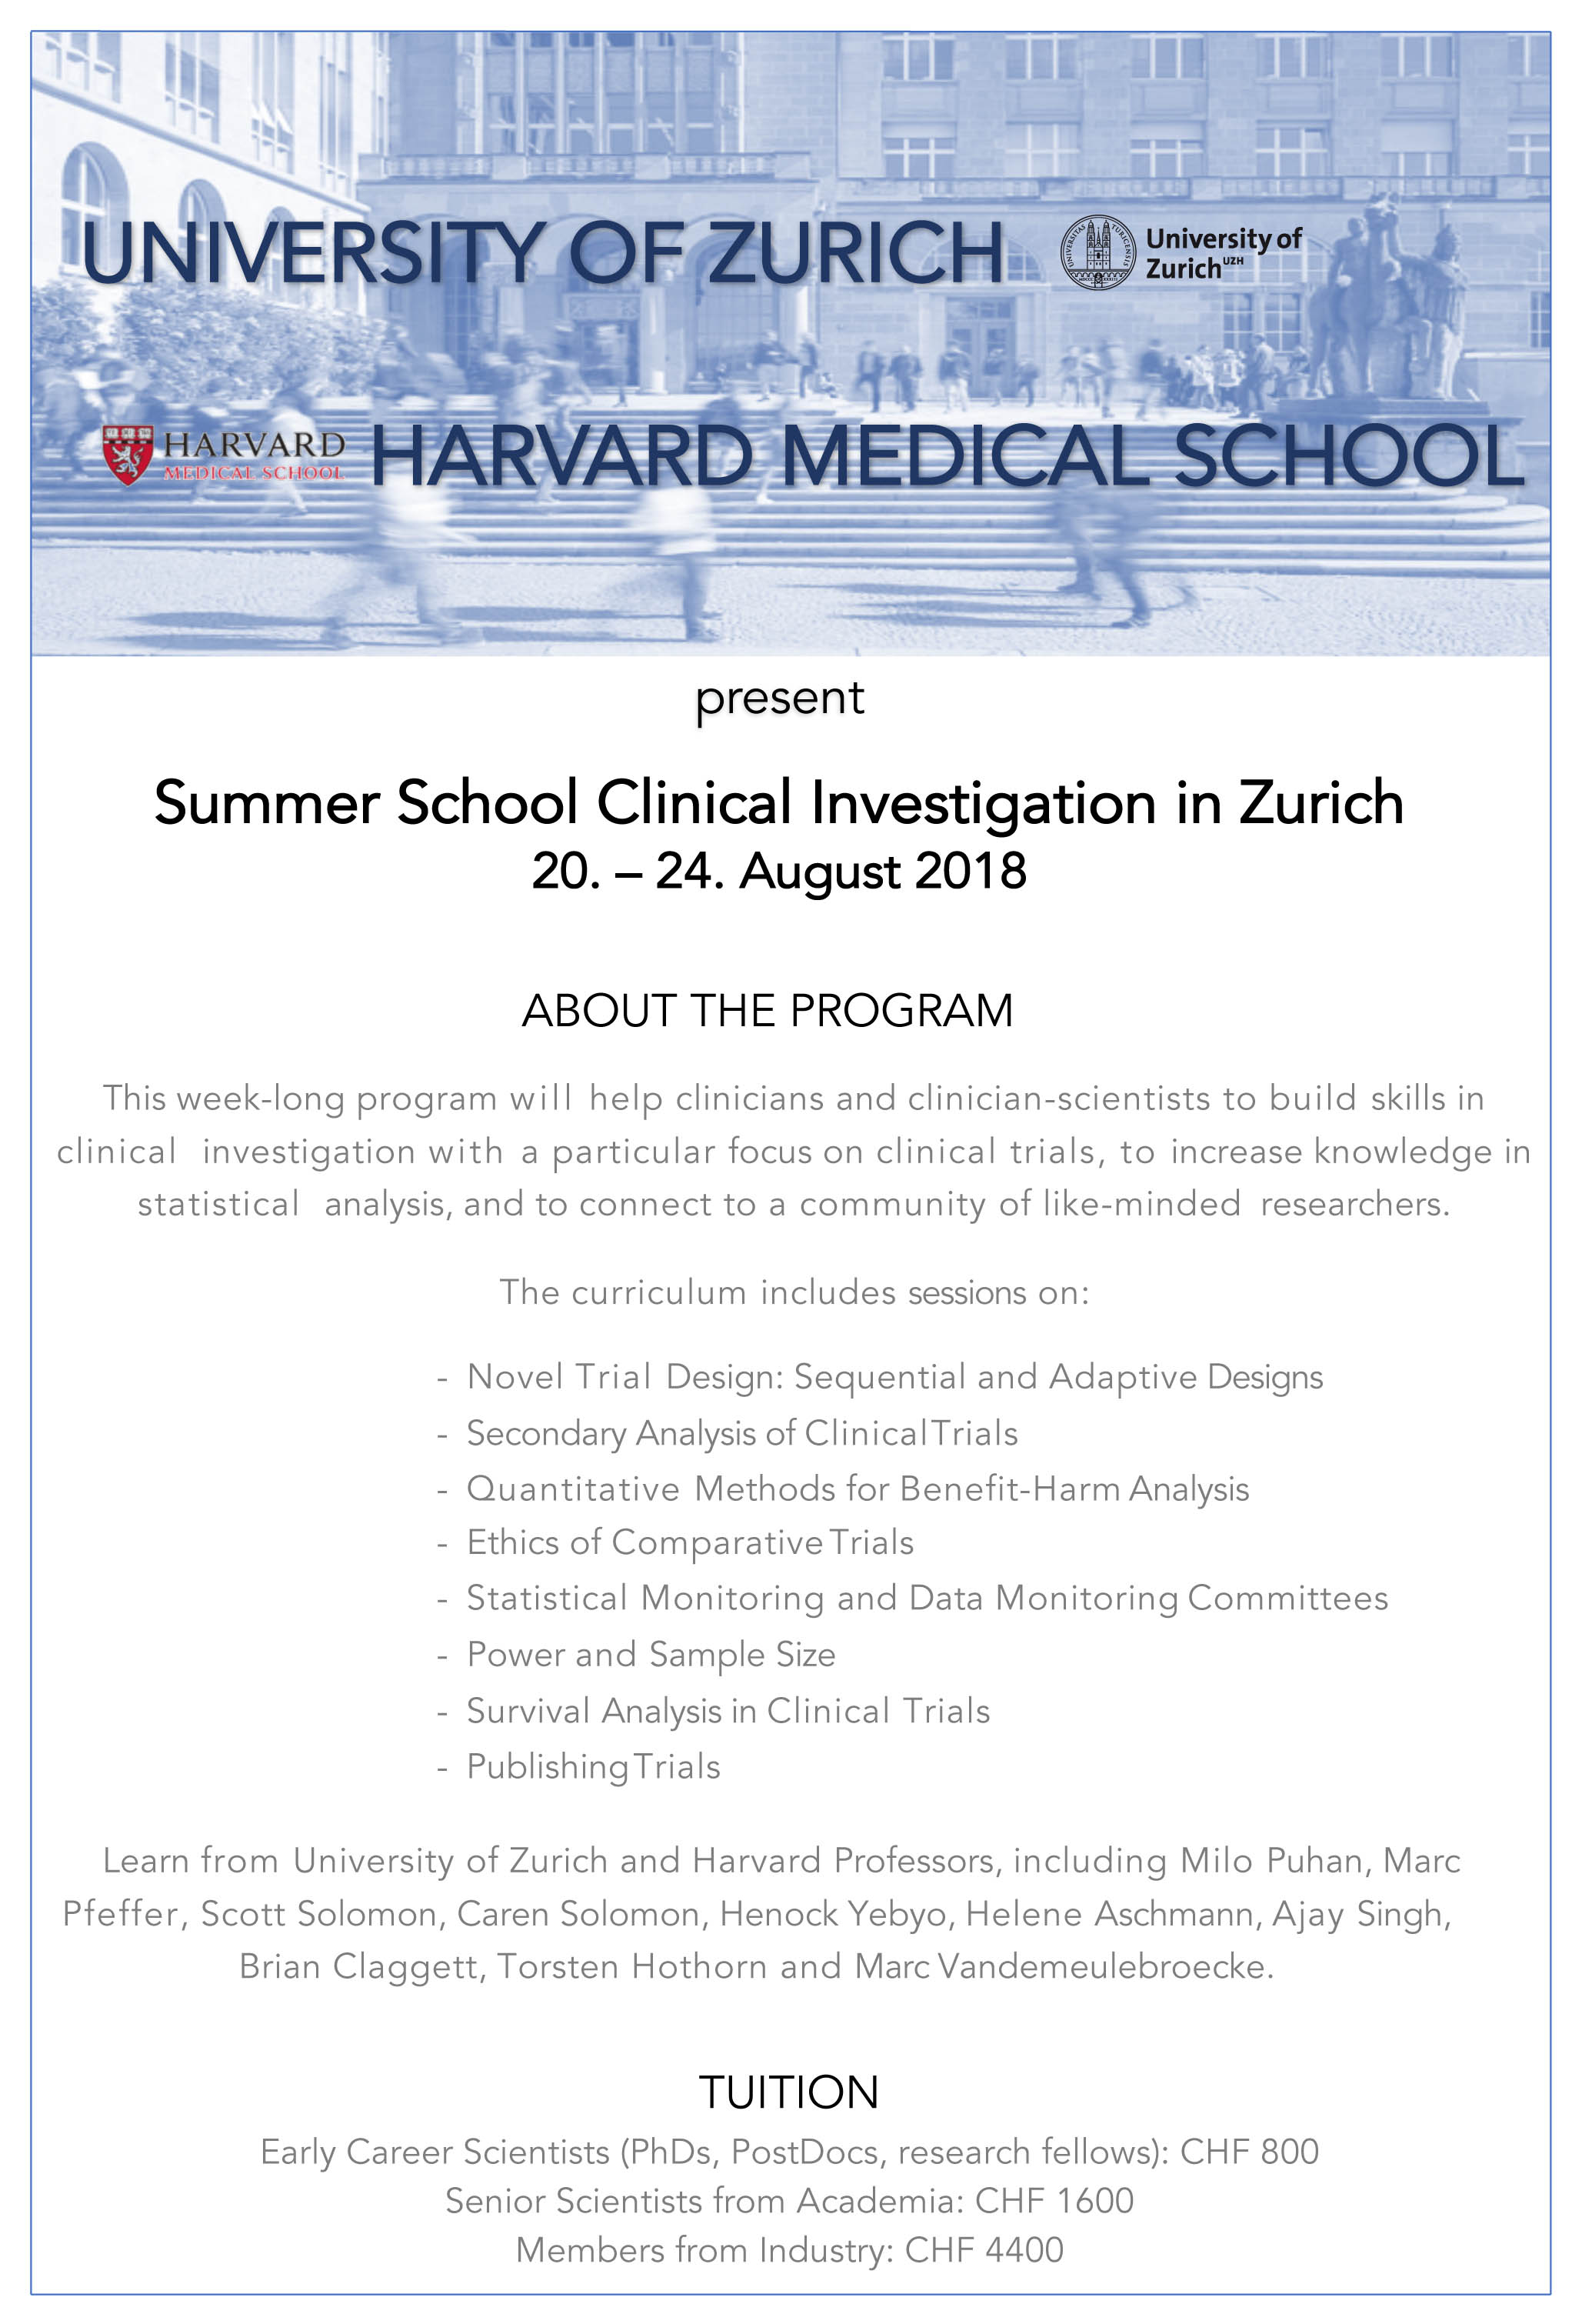 flyer_uzh_harvard_summerschool_2018.jpg